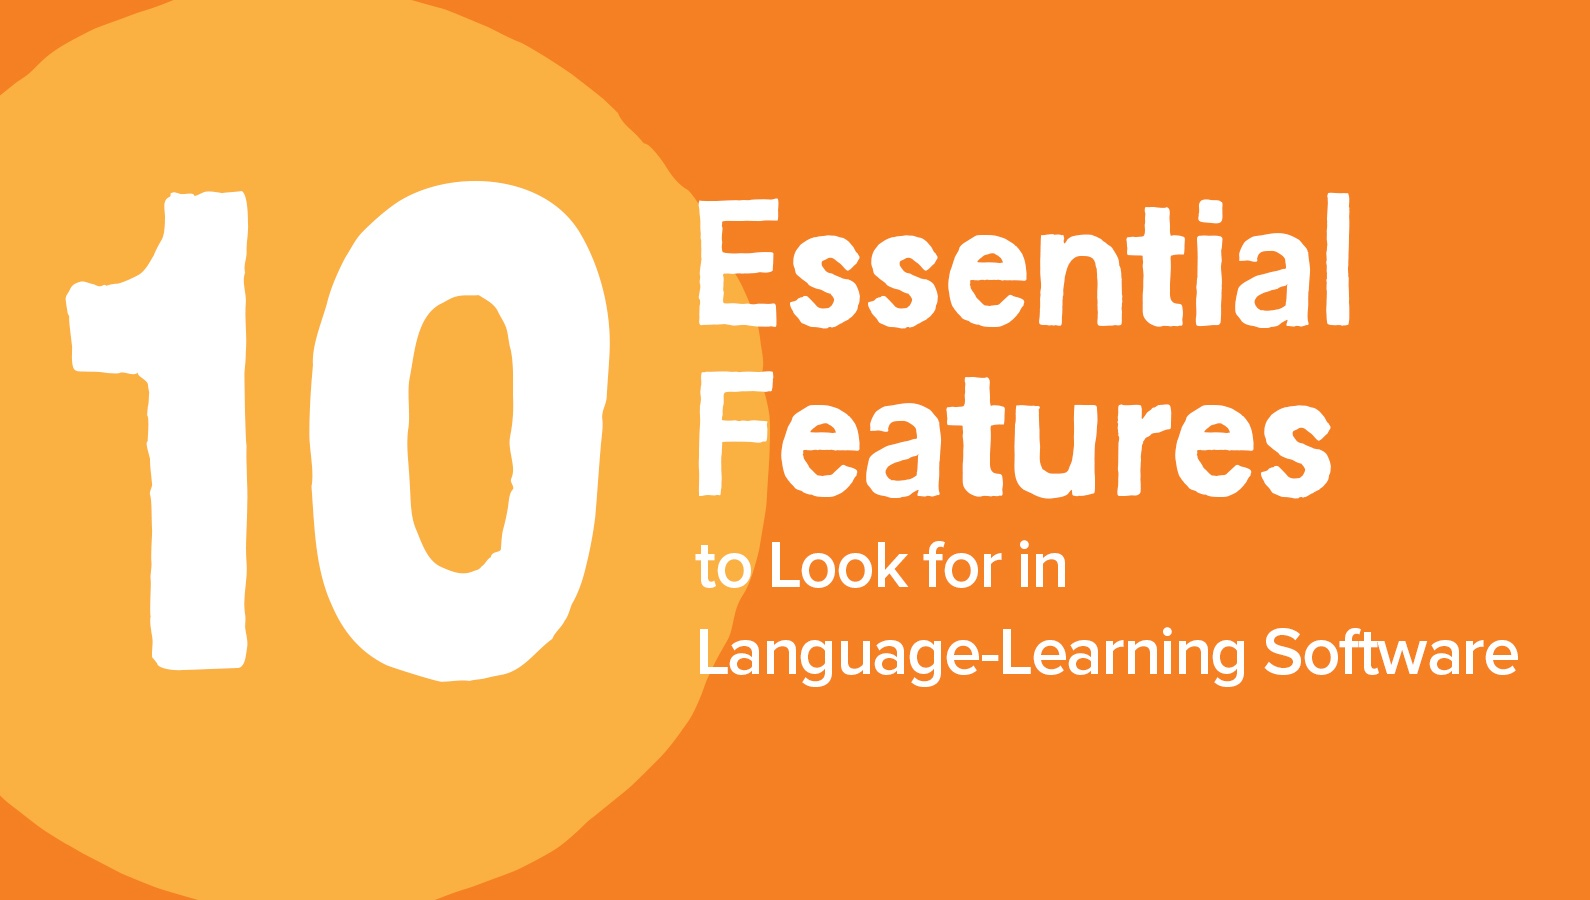 10 Essential Features to Look for in Language-Learning Software